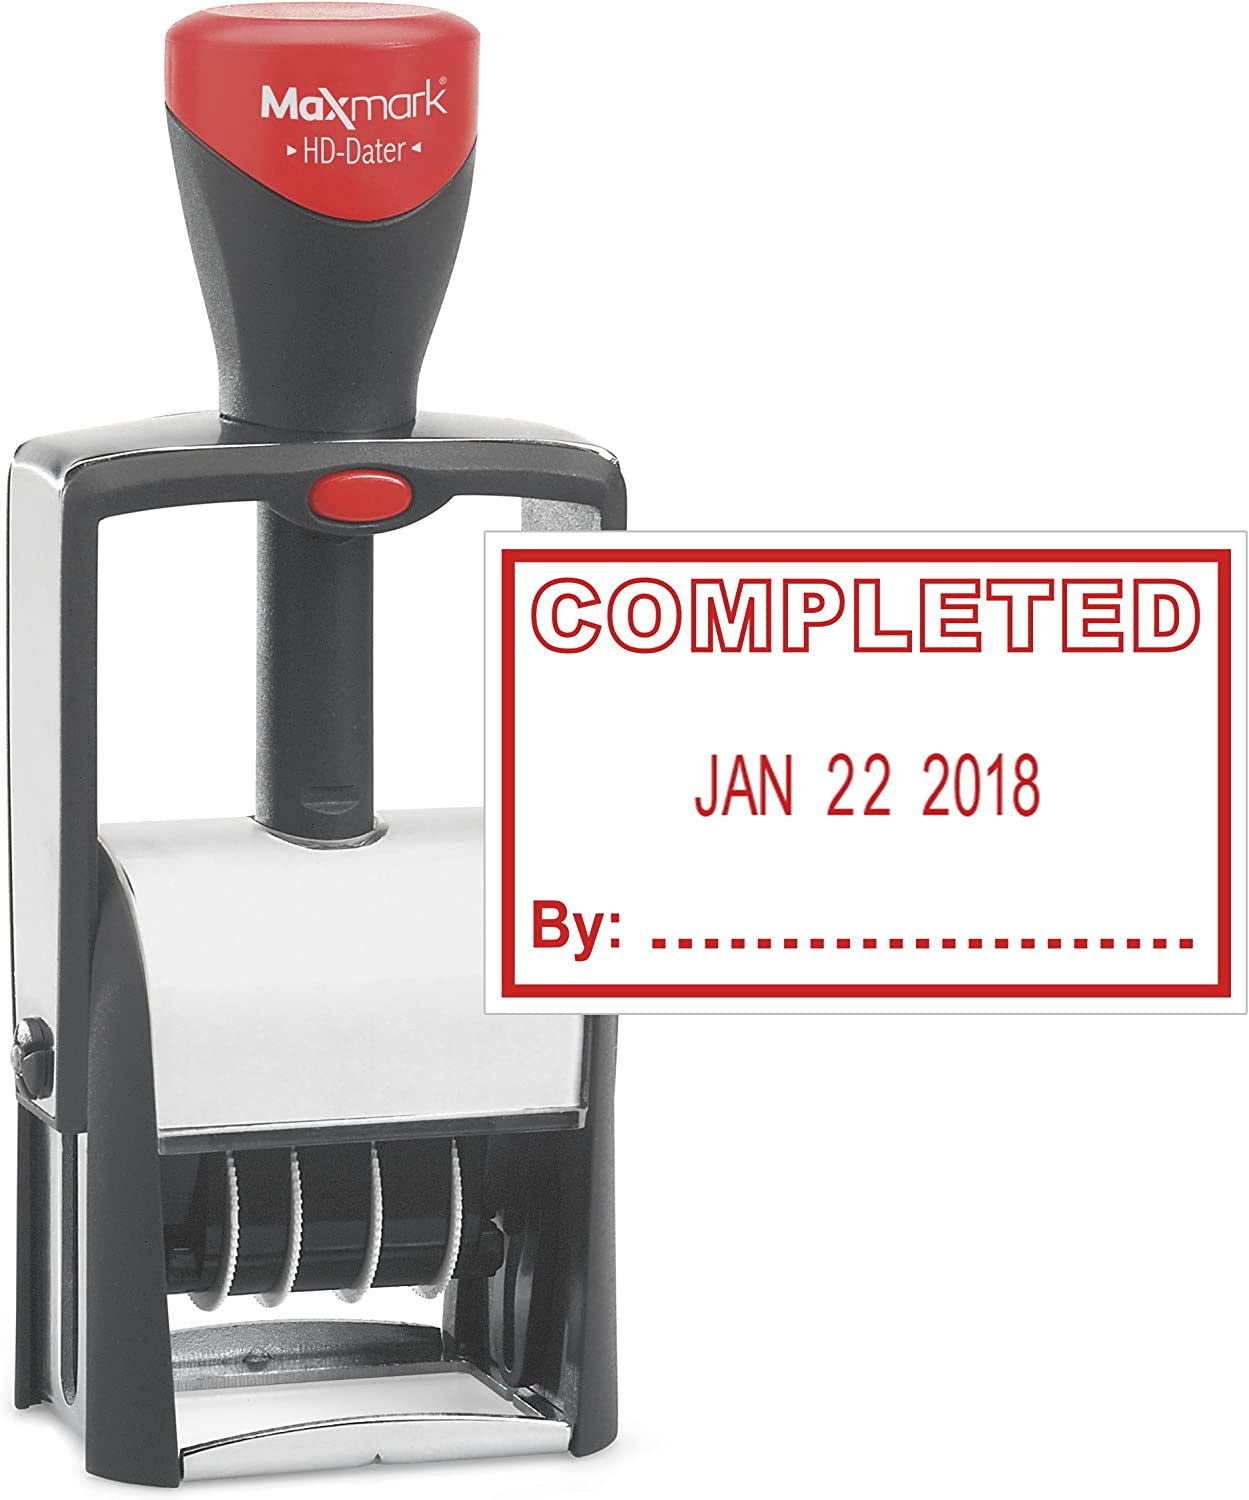 Heavy Duty Date Stamp with Completed Self Inking Stamp - RED Ink)